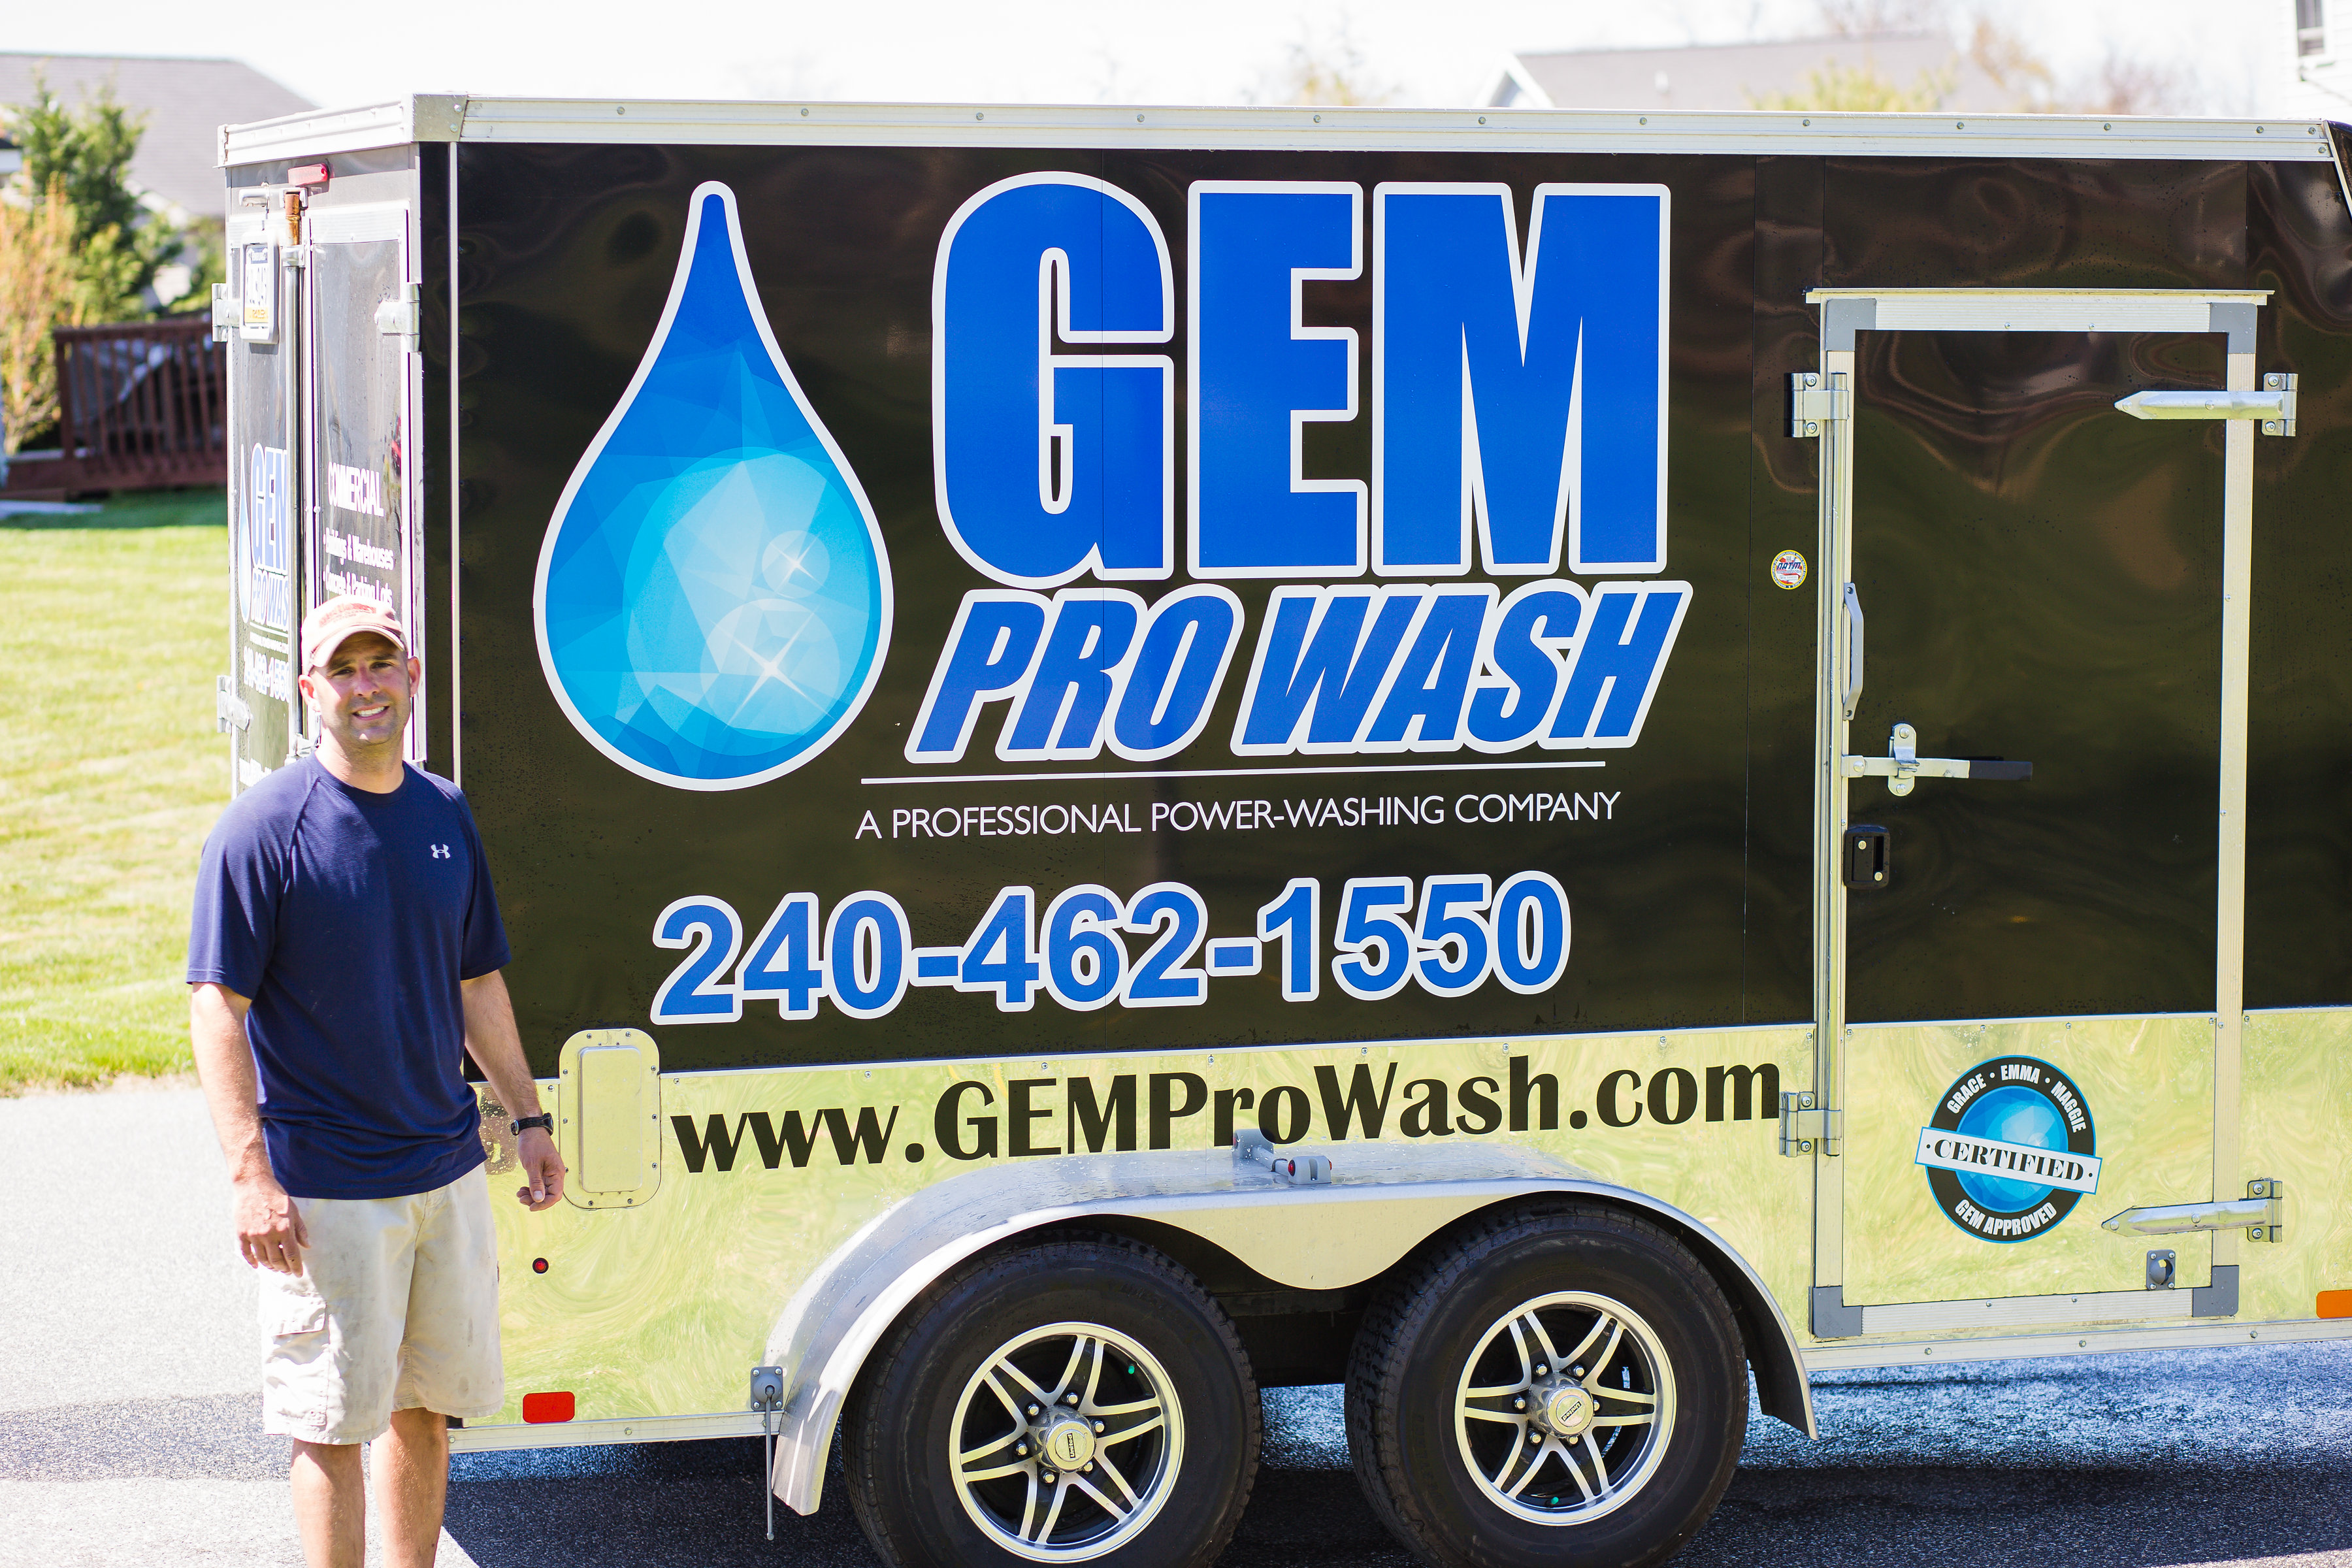 Gem Pro Wash | House Washing Contractor in Hagerstown MD